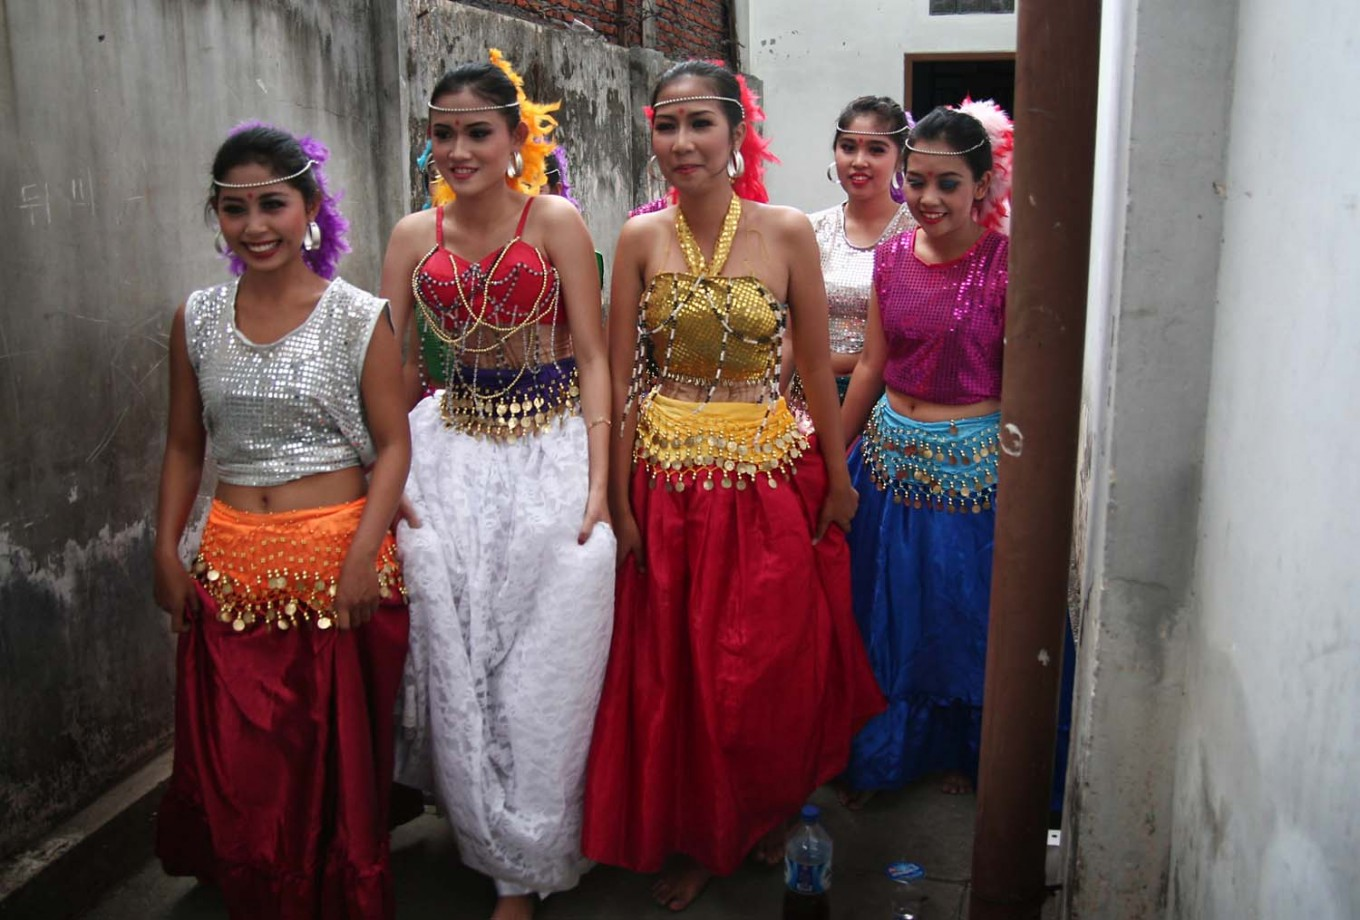 Dancers walk to the stage prior to their performance at the Bollywood Mania Festival. JP/Aman Rochman